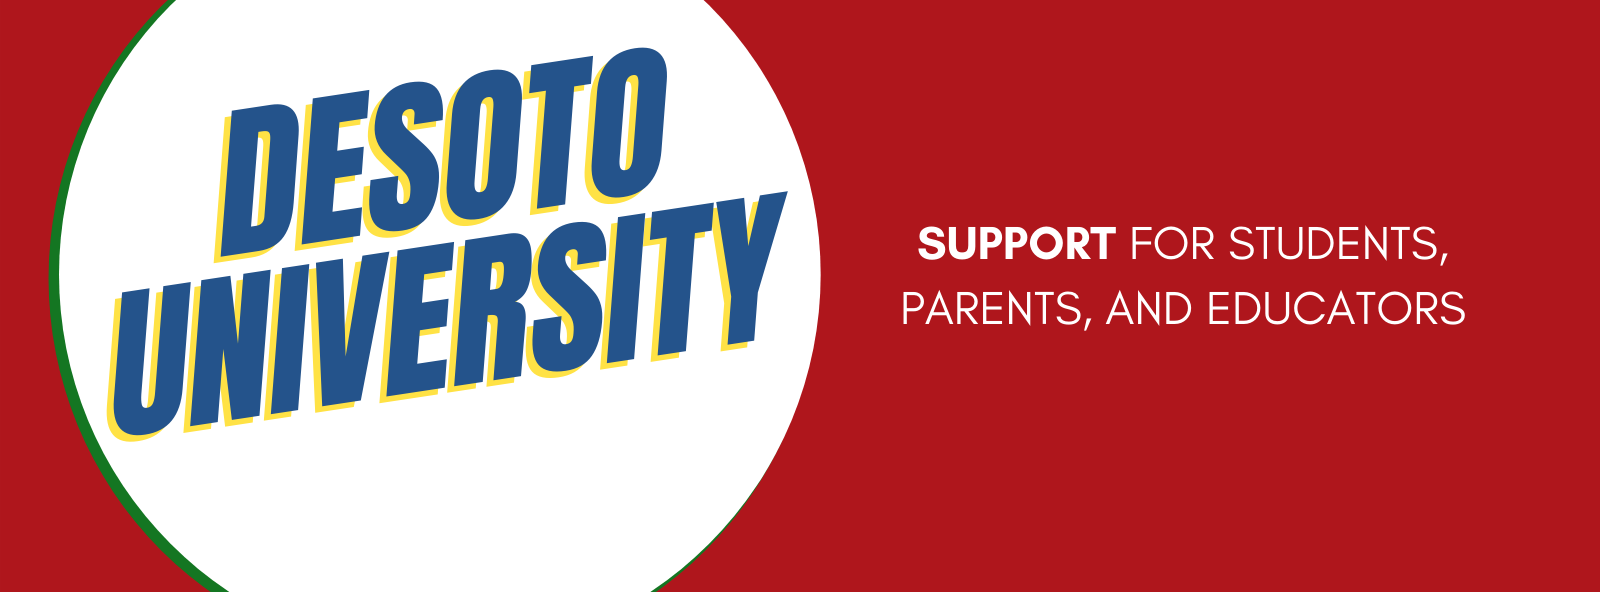 Desoto U - Support for all